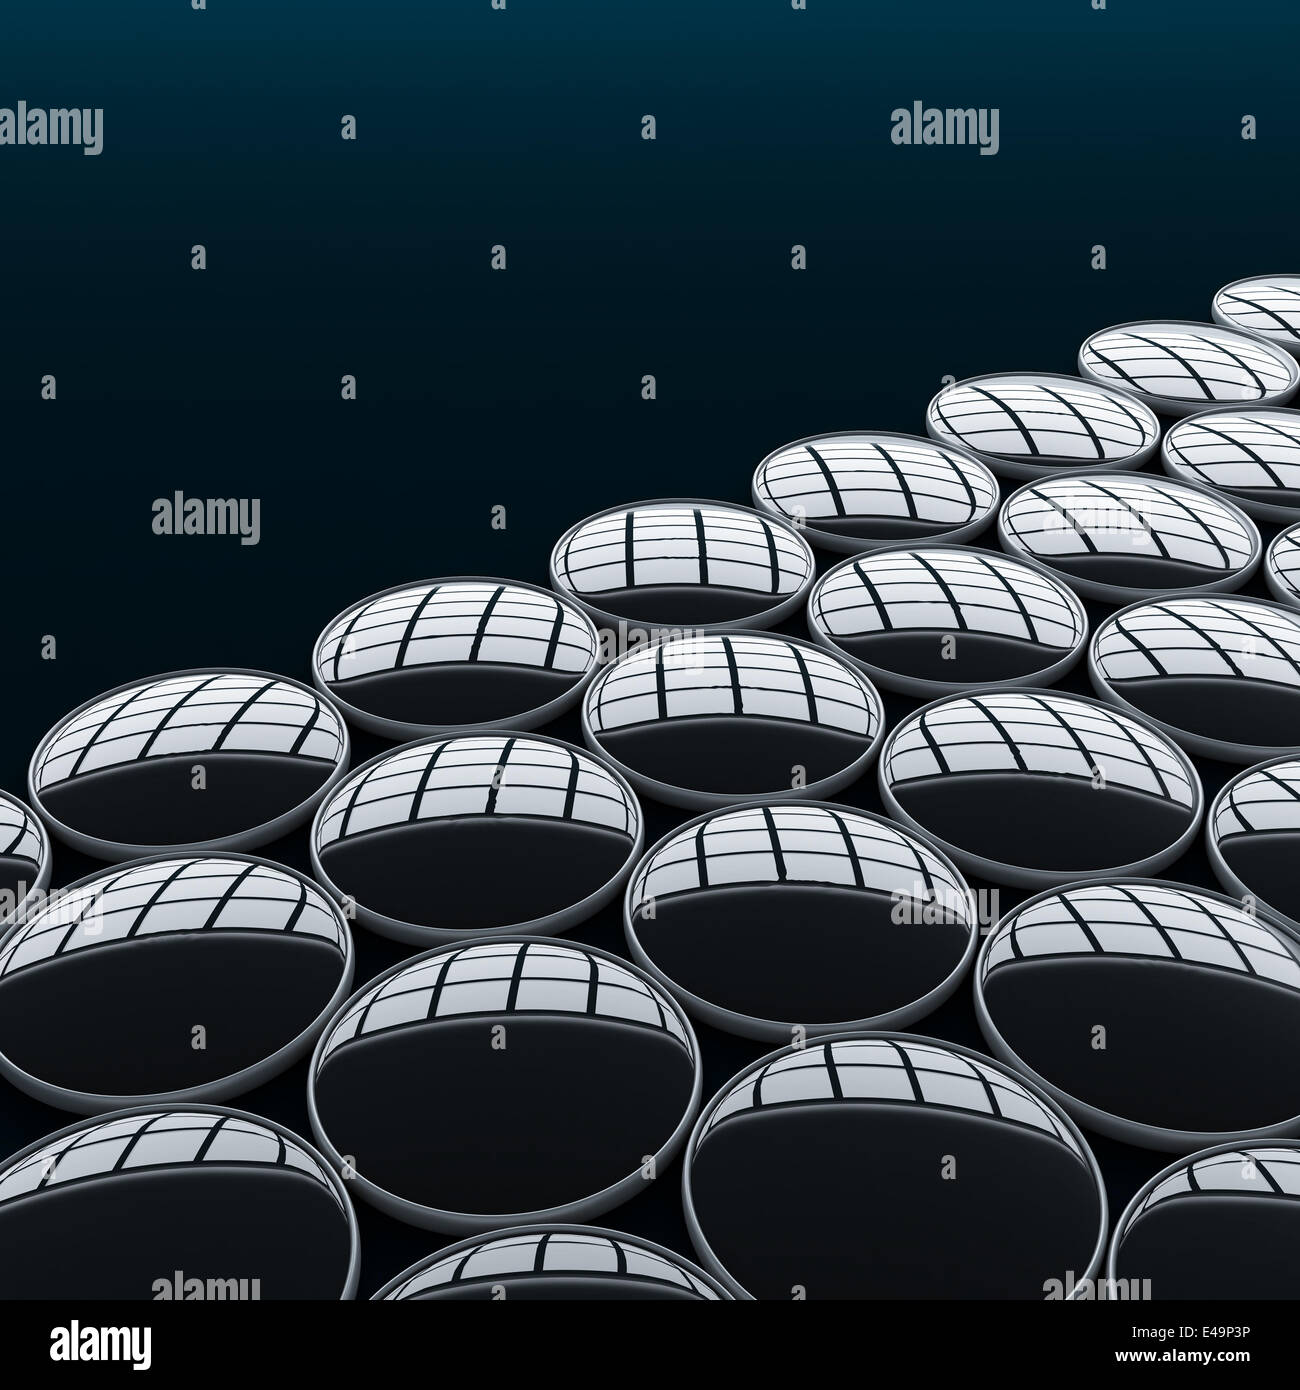 Abstract bases connected together - Stock Image